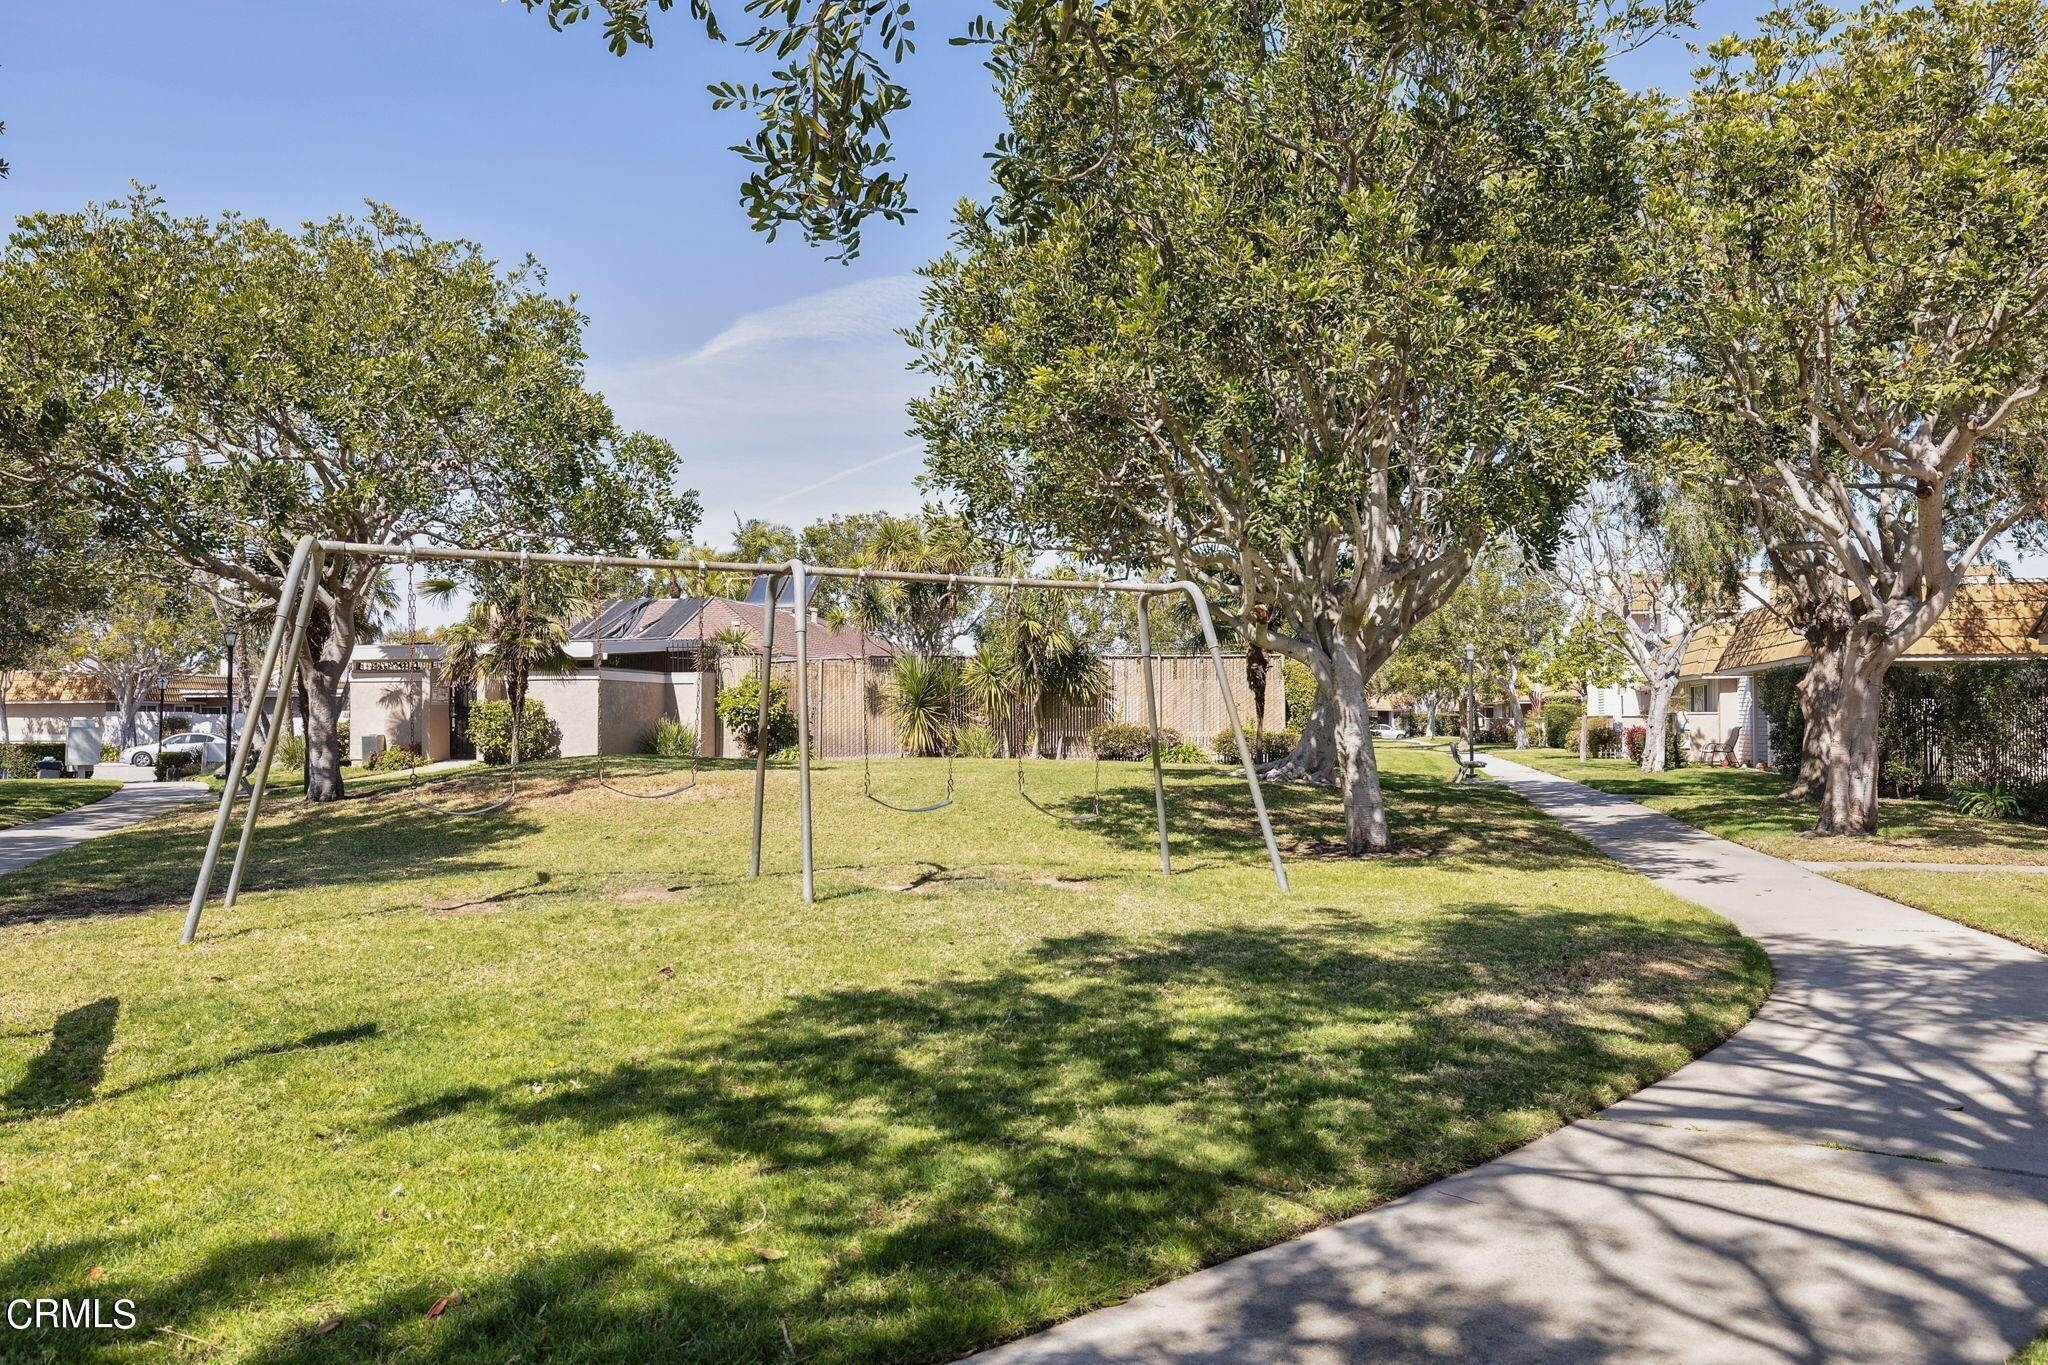 27. townhouses for Sale at 3565 Isle Way Oxnard, California 93035 United States